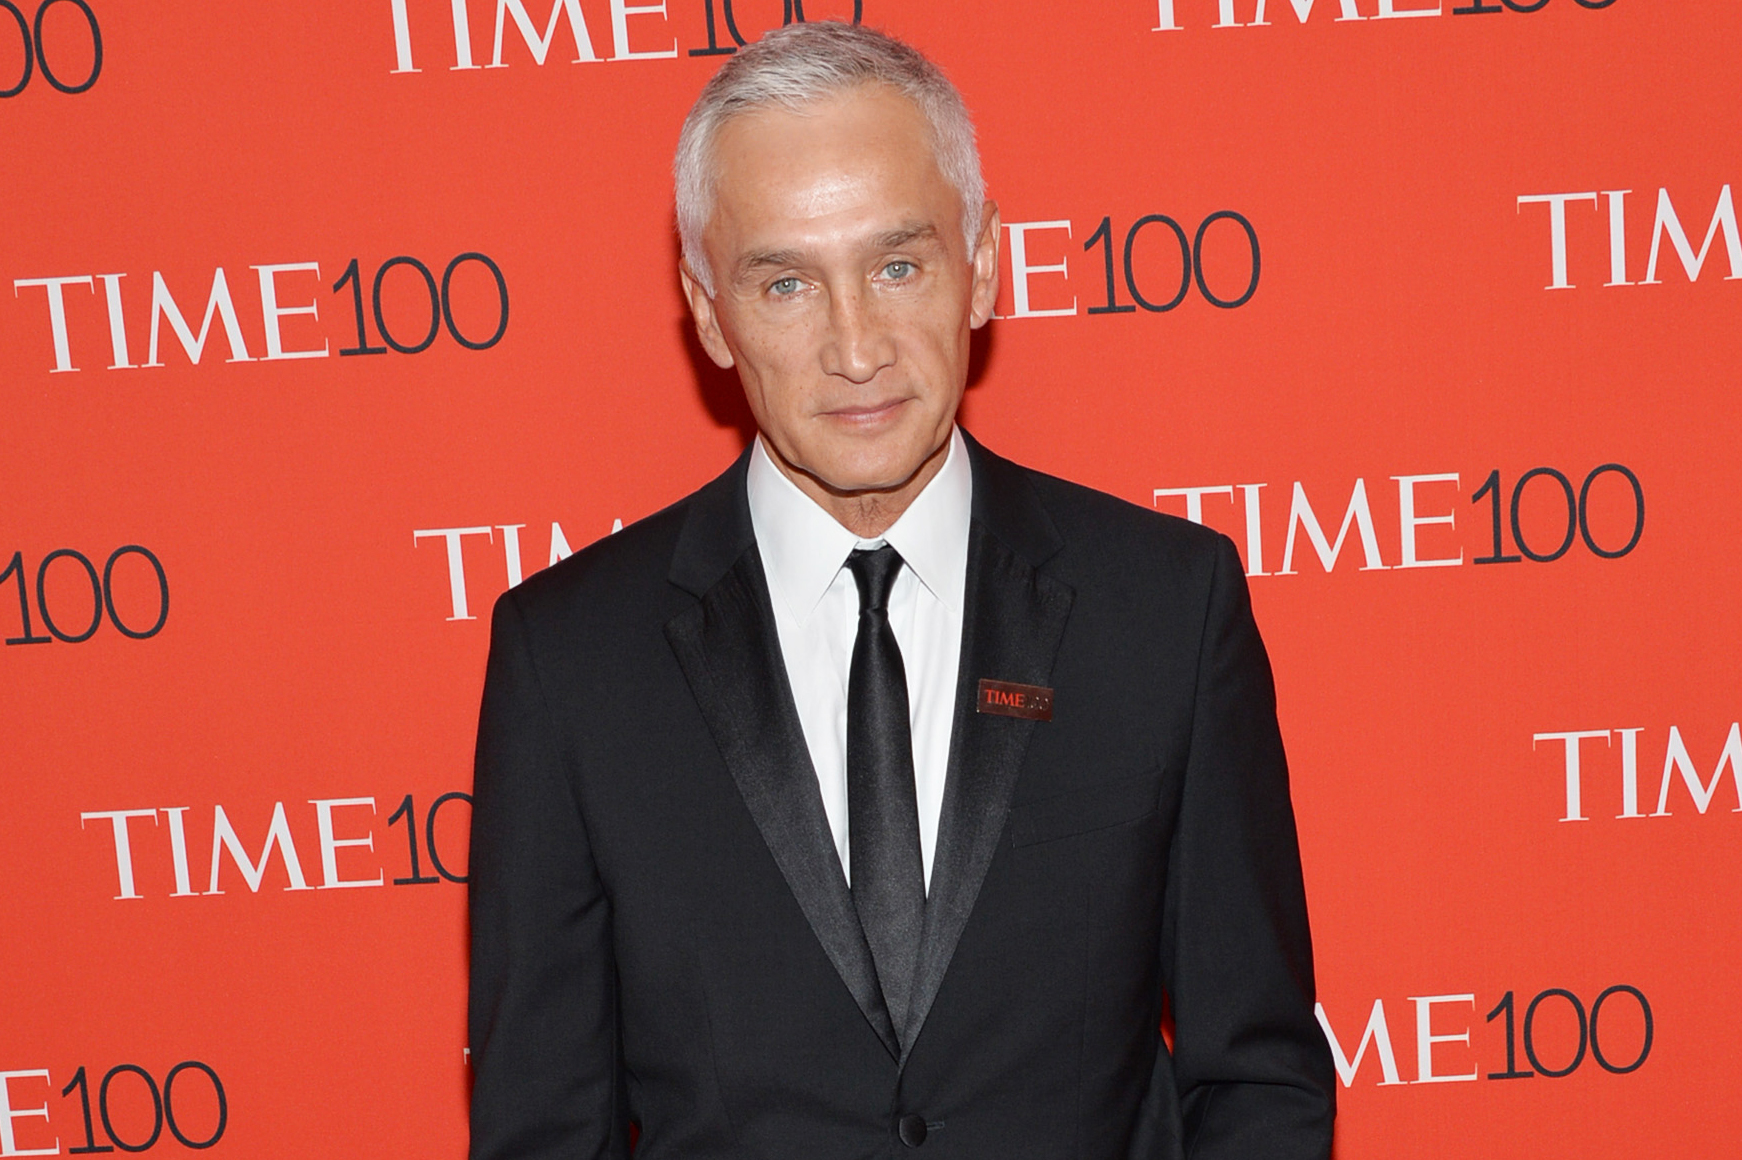 Jorge Ramos attends the TIME 100 Gala, on April 21, 2015, in New York City.